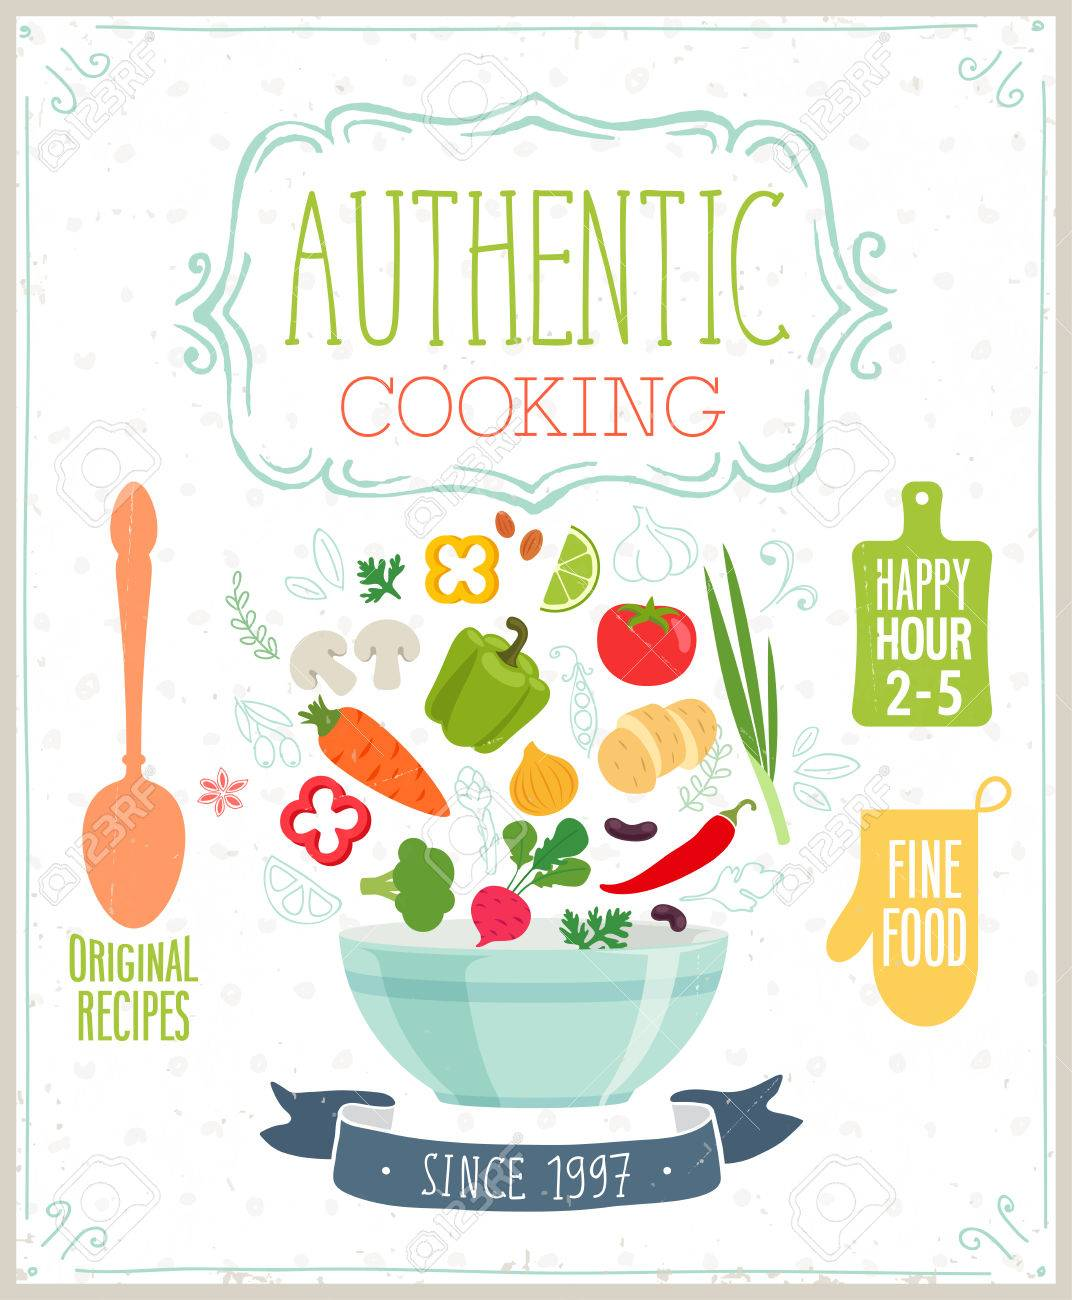 Authentic cooking poster. Vector illustration. - 40915797